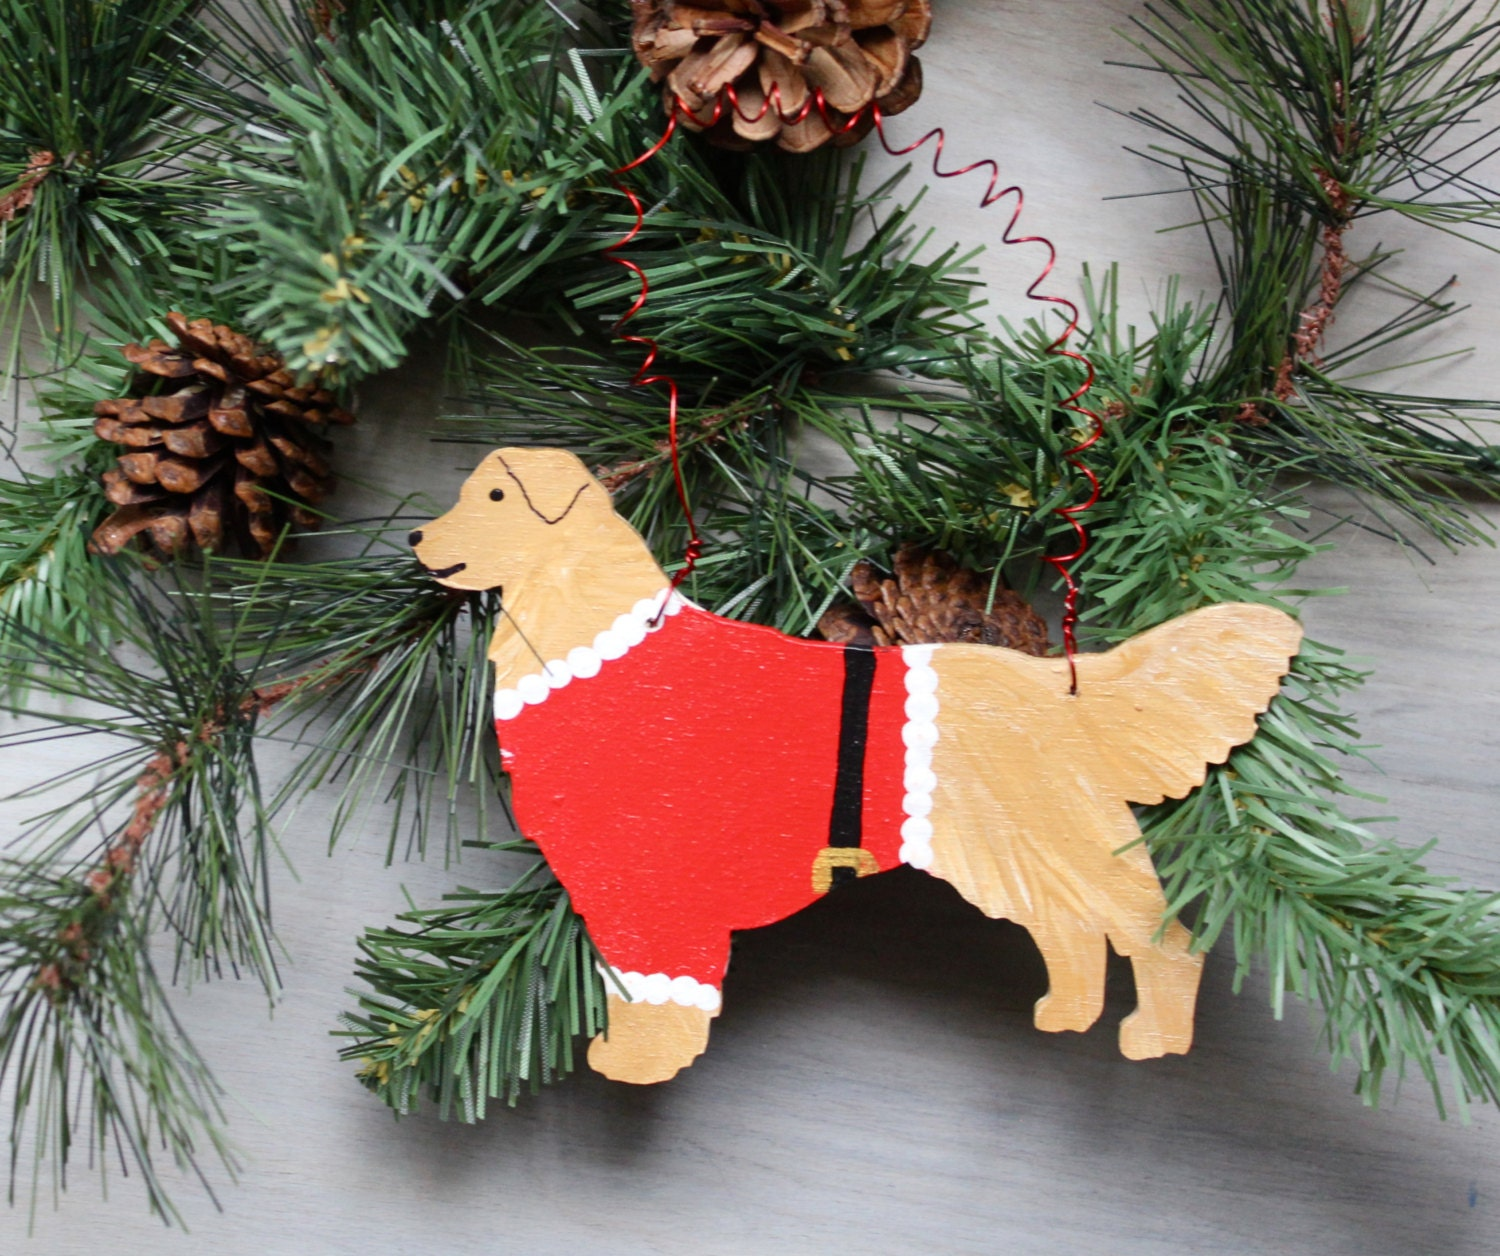 Golden Retriever Christmas Tree Ornament Santa Paws Hand Painted Wood